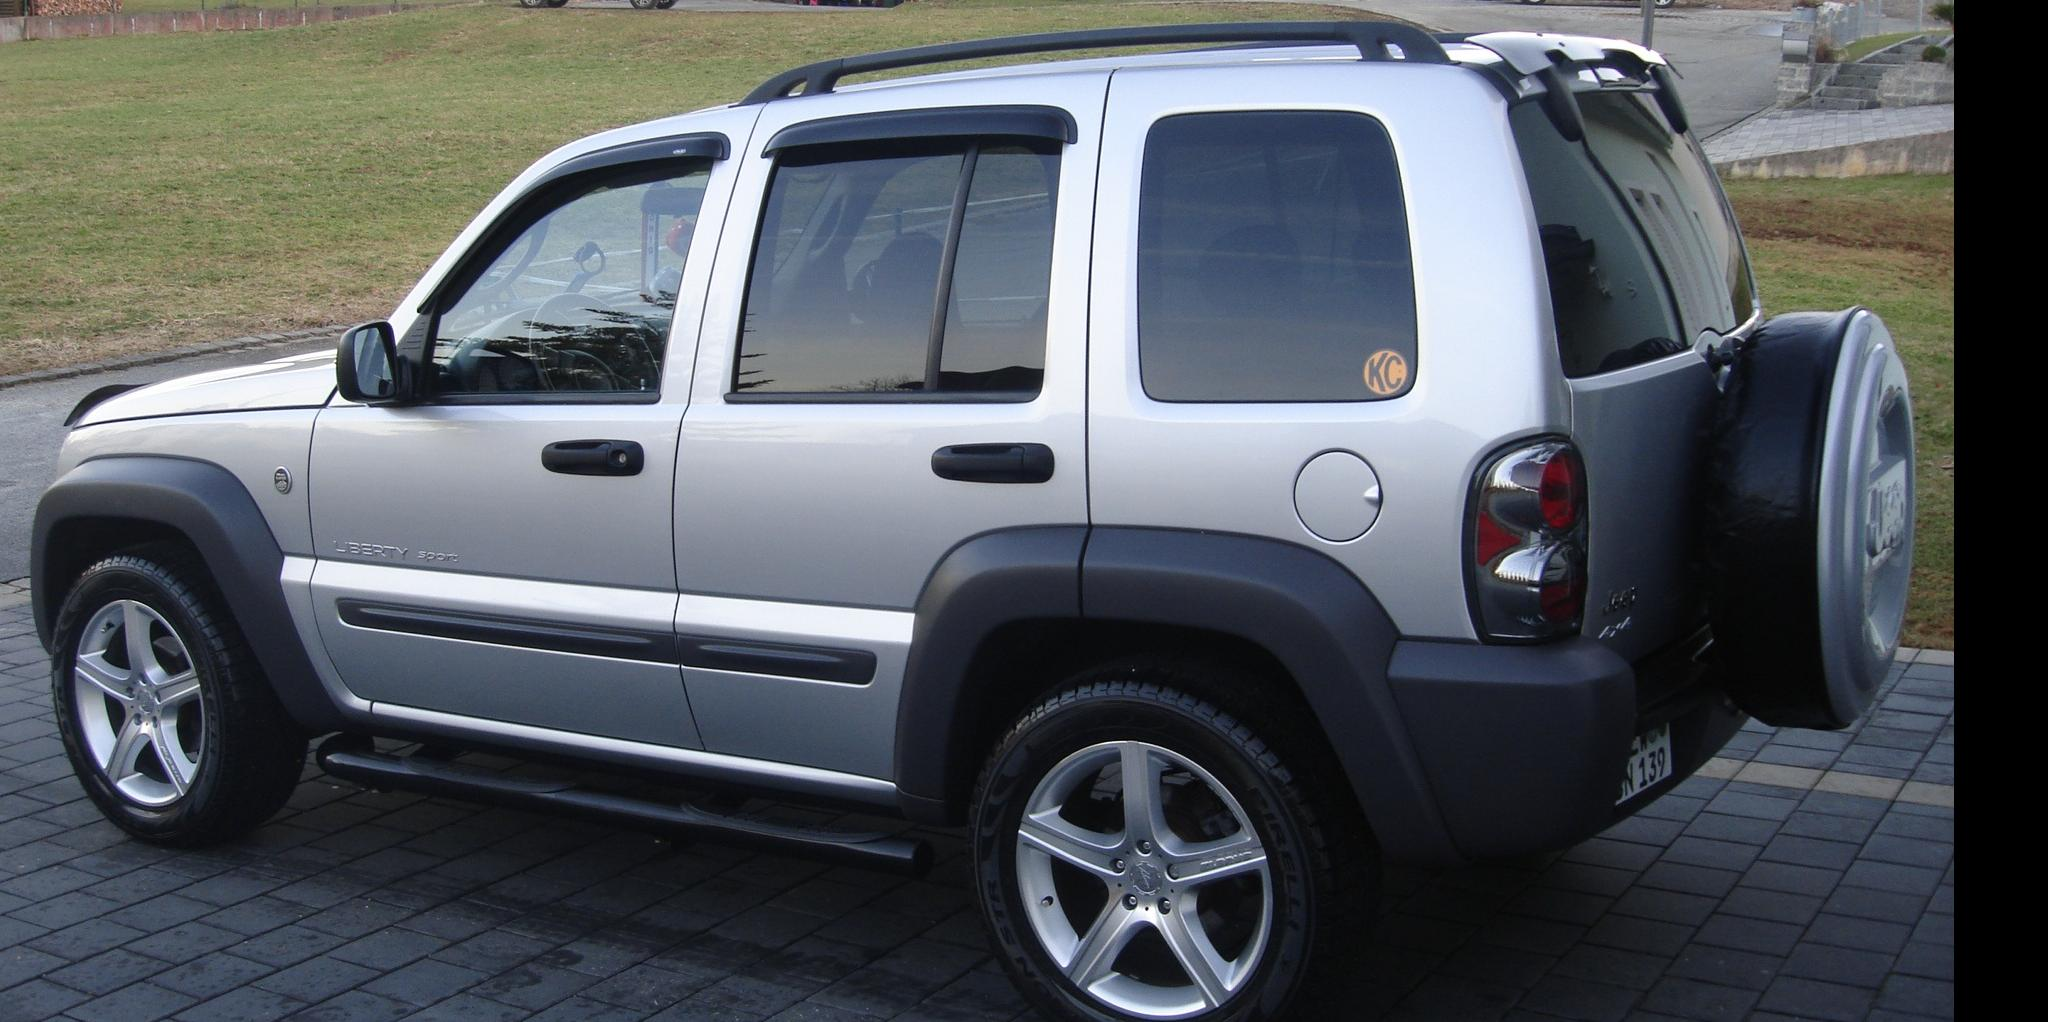 jeff_cooperrider 2003 Jeep Liberty